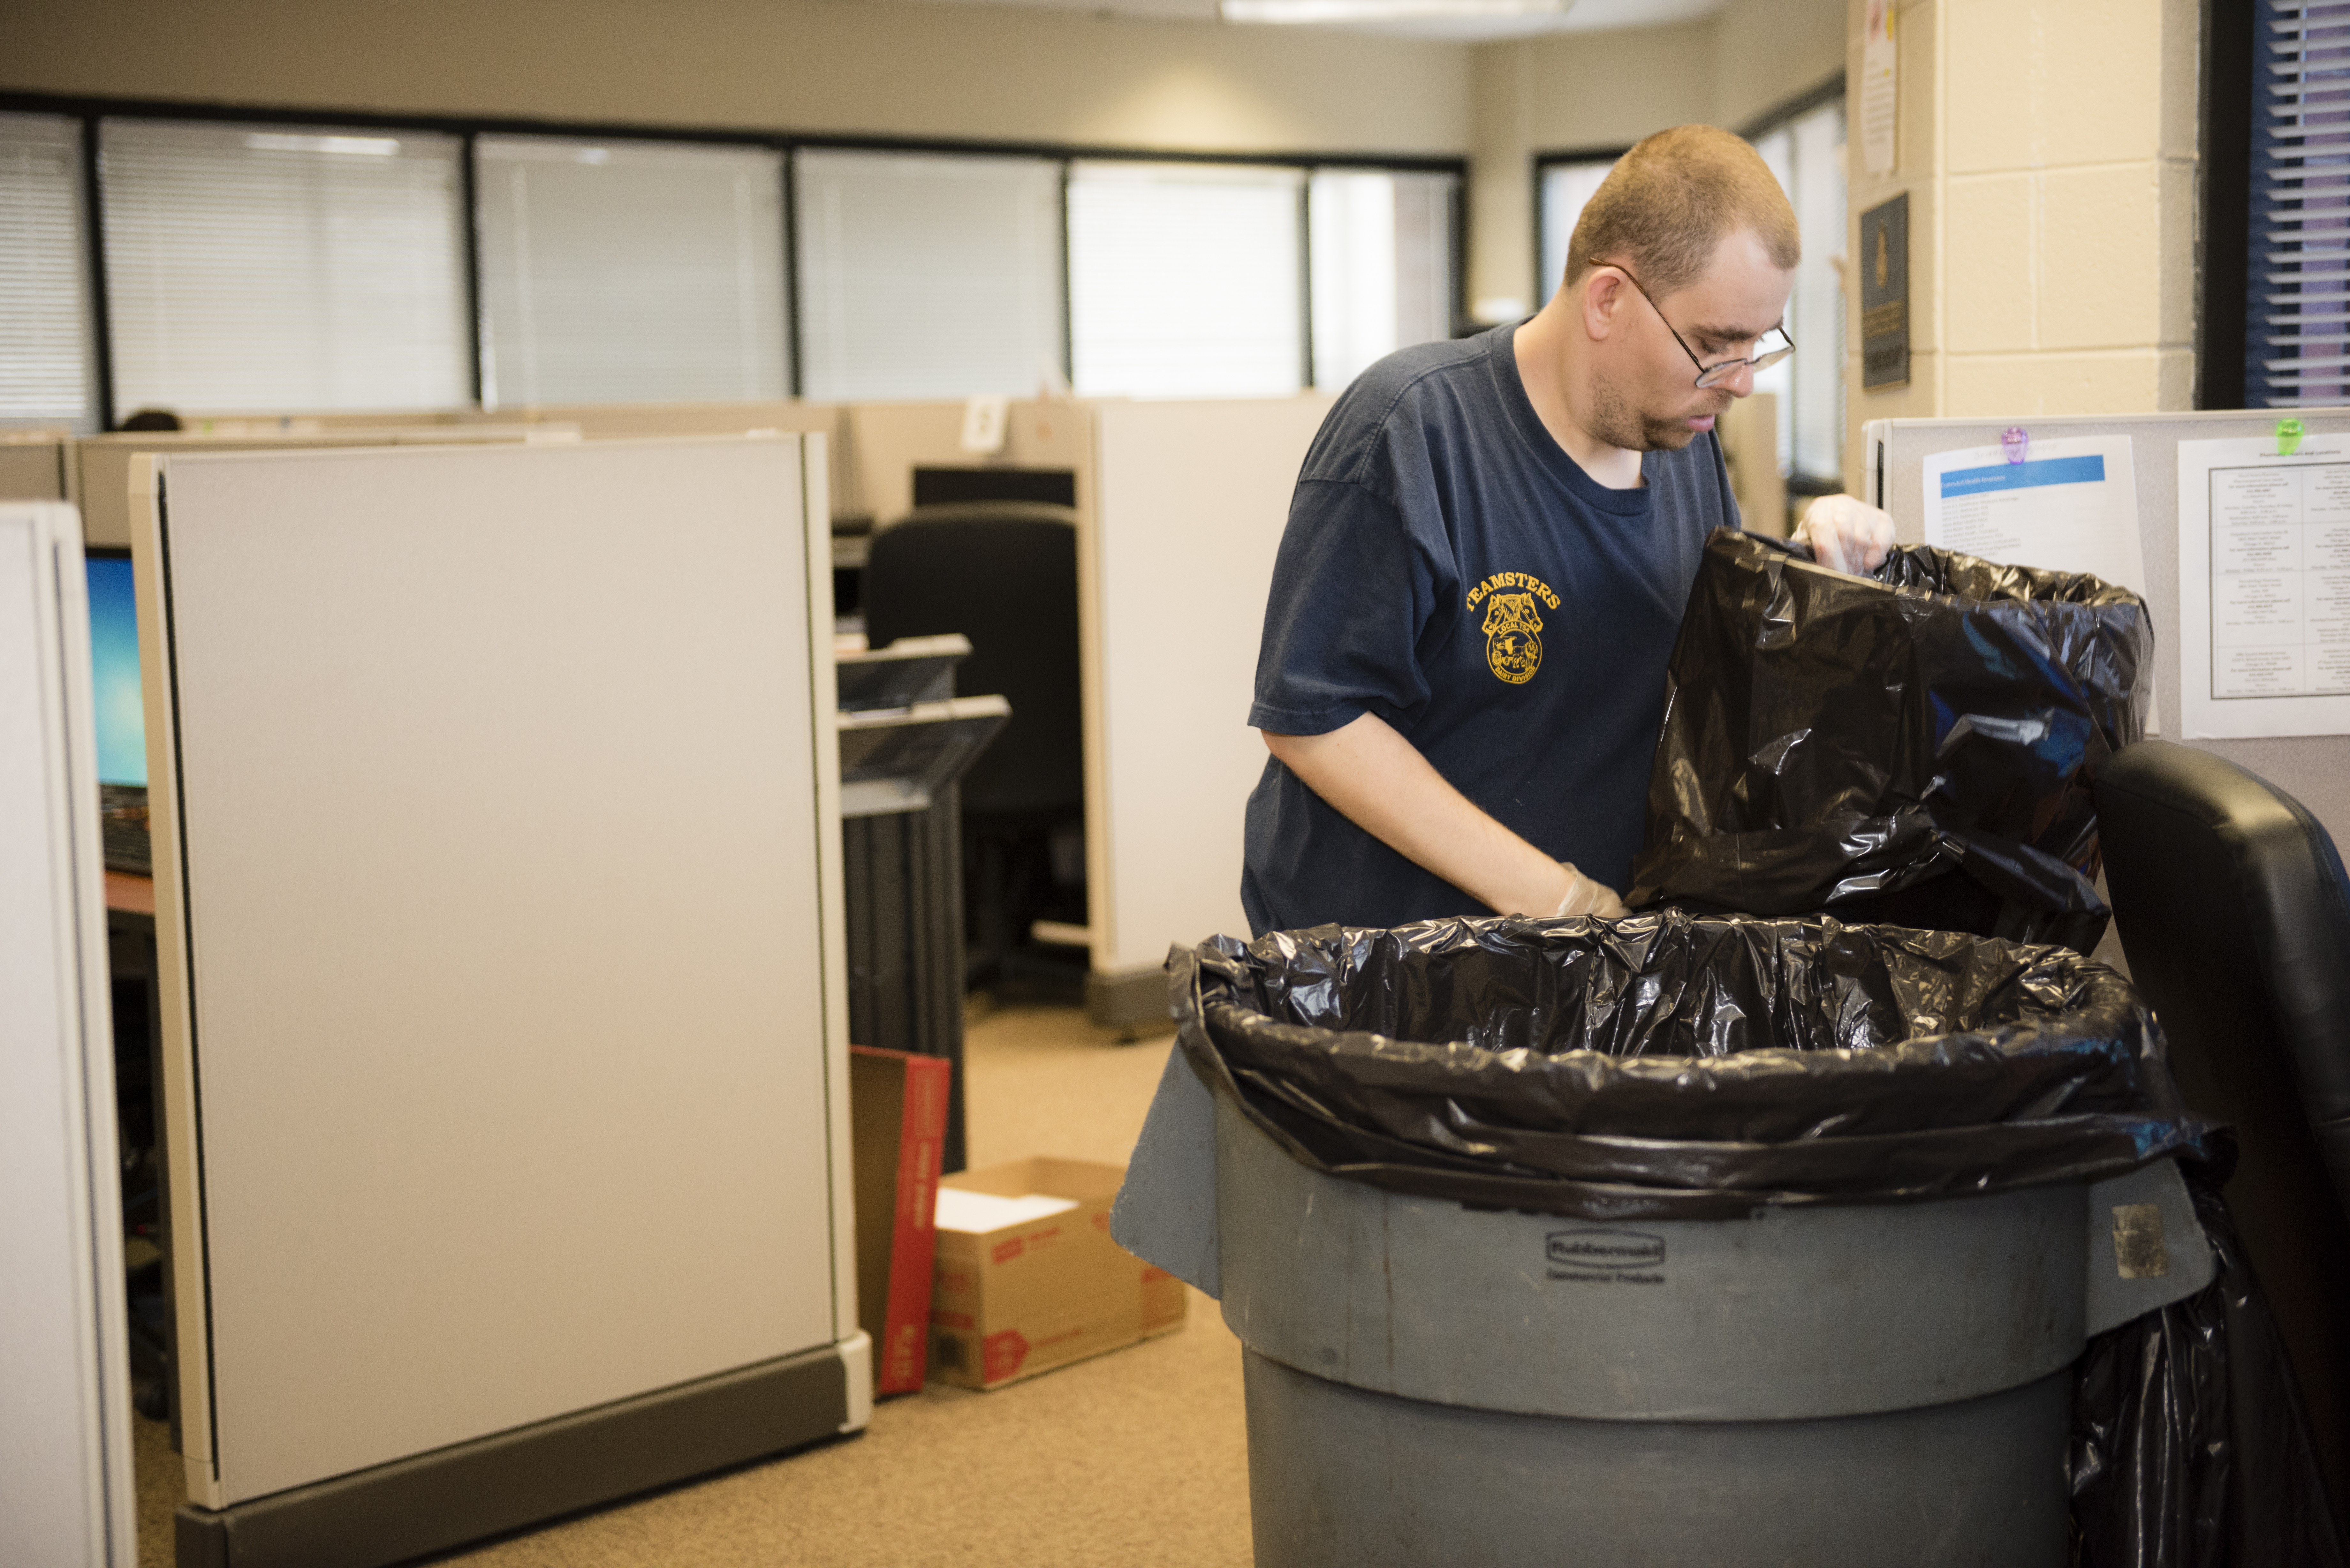 ALS client who also works at the lighthouse empties trash